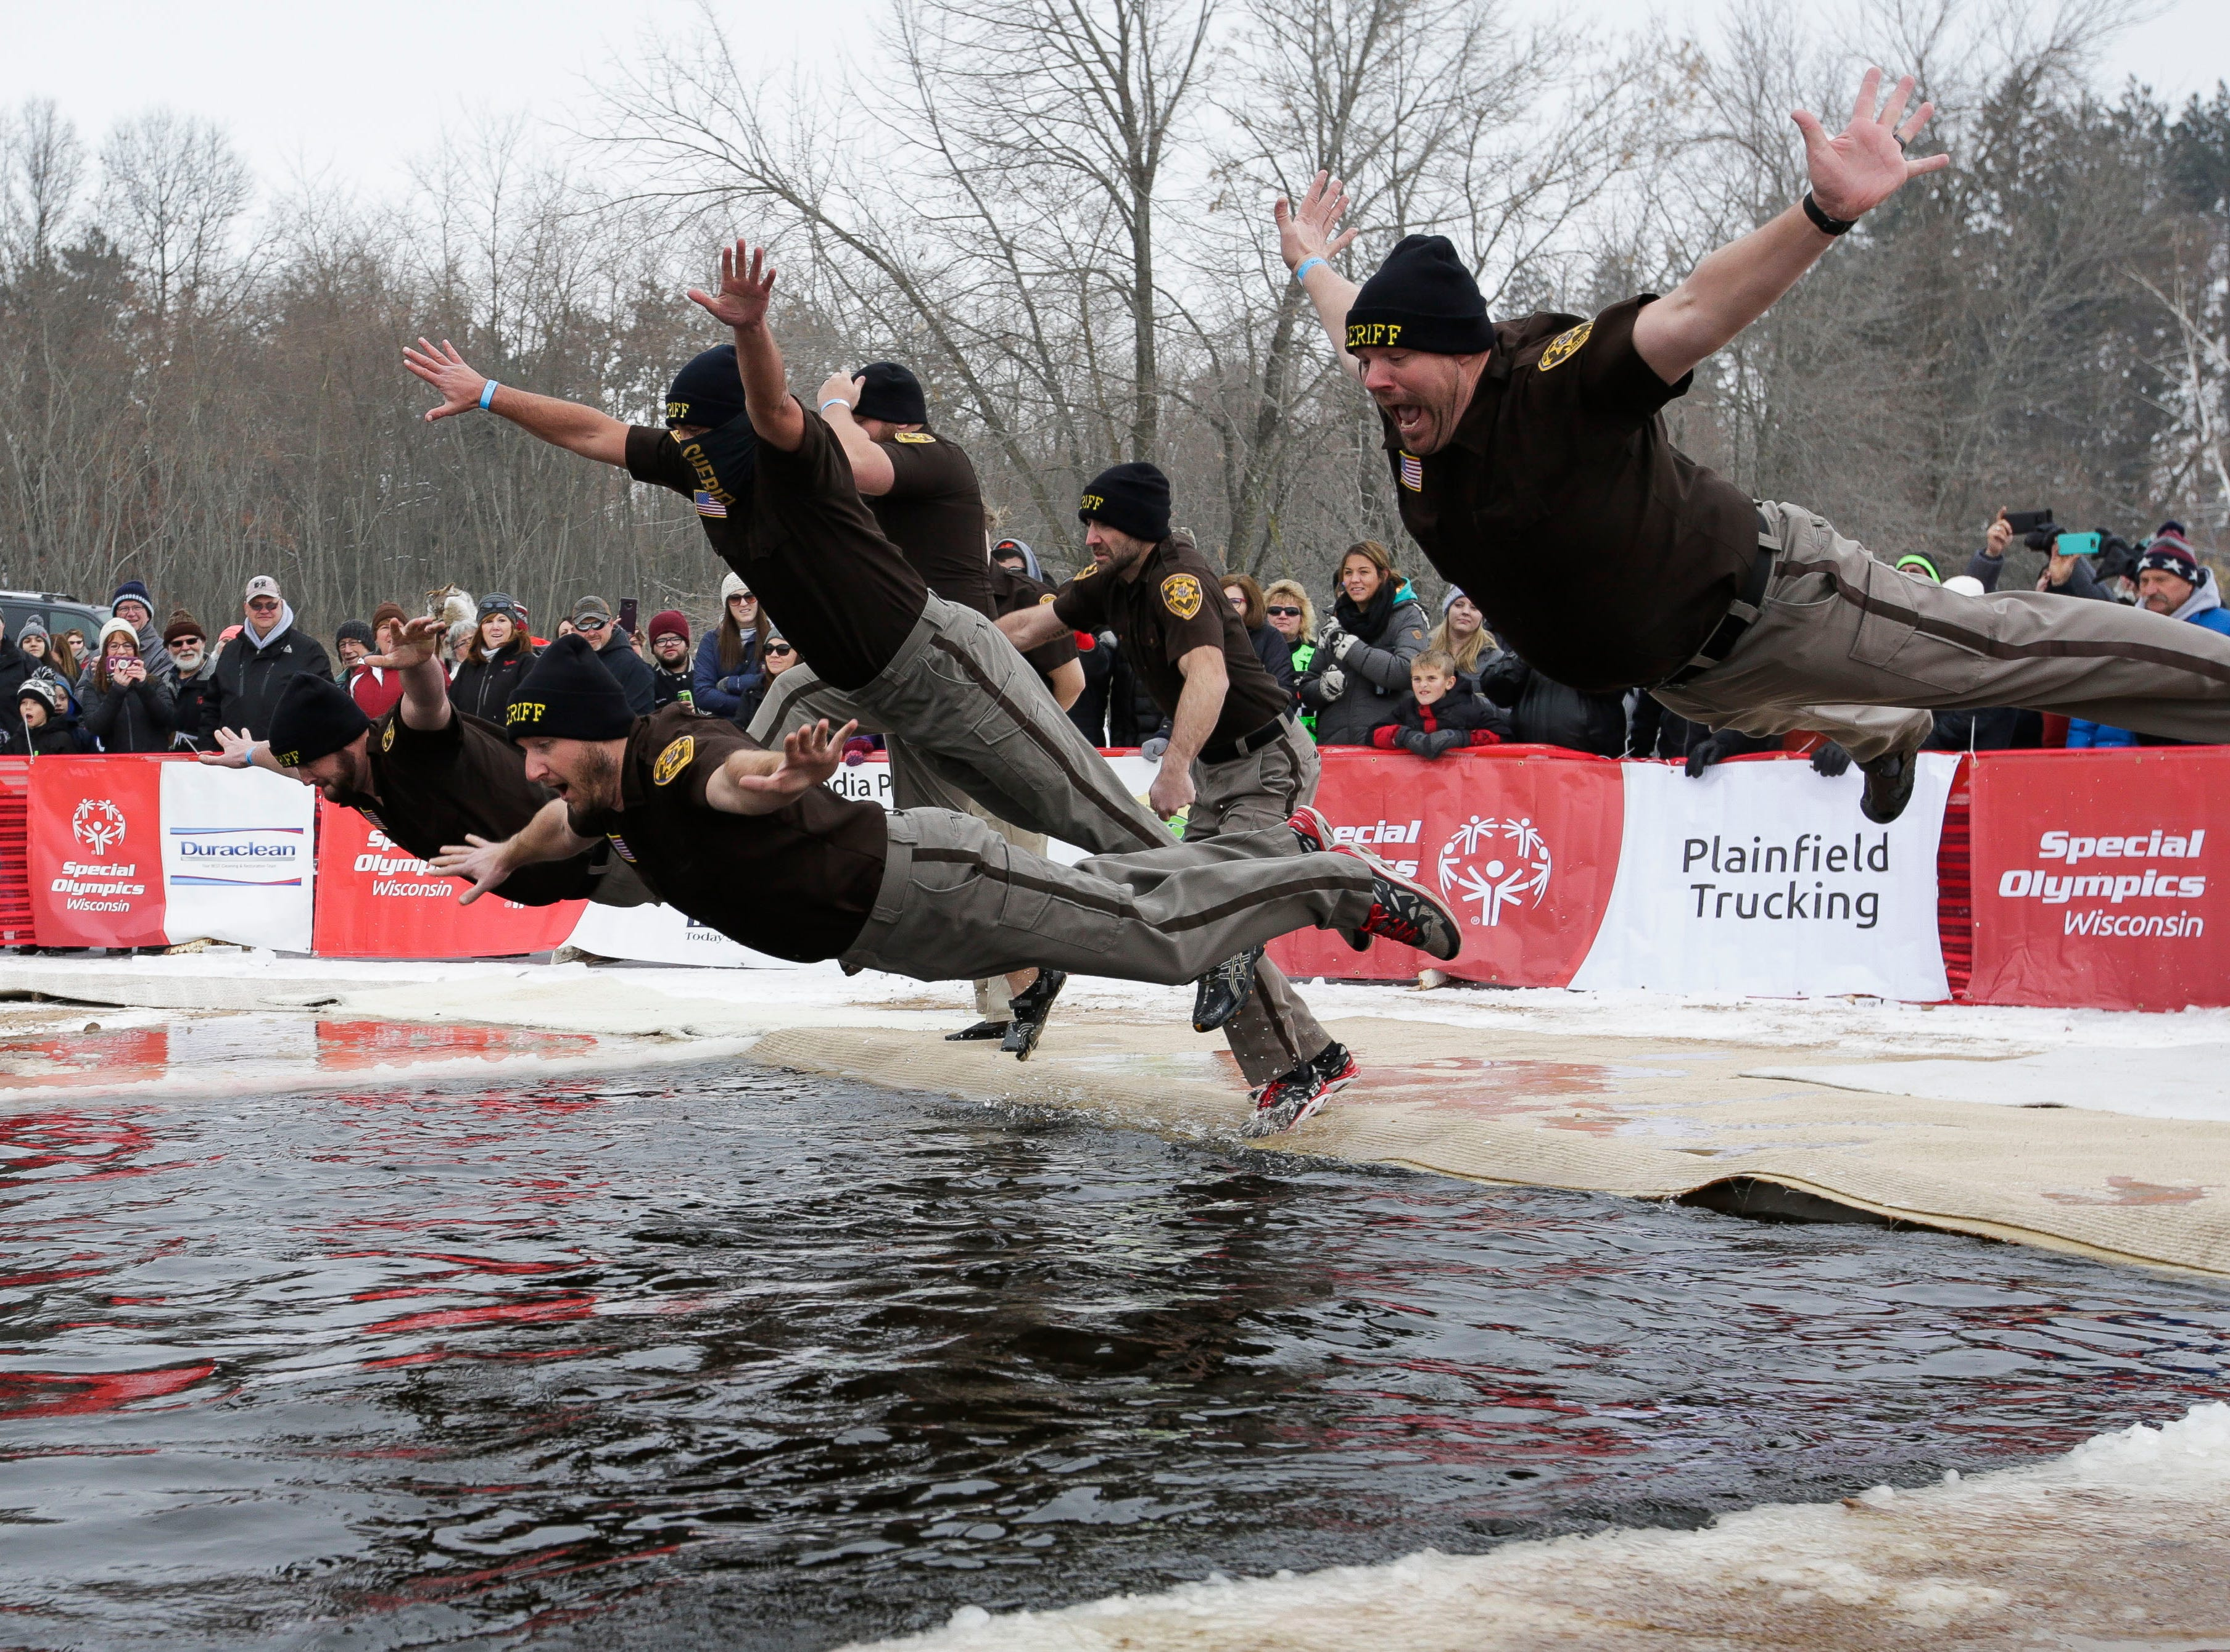 Members of the Wood County Sheriff's Department take the polar plunge on Saturday, February 2, 2019, at Anchor Bay Bar and Grill in Biron, Wis. The event was one of many polar plunges across the state held as fundraisers for Special Olympics Wisconsin.Tork Mason/USA TODAY NETWORK-Wisconsin